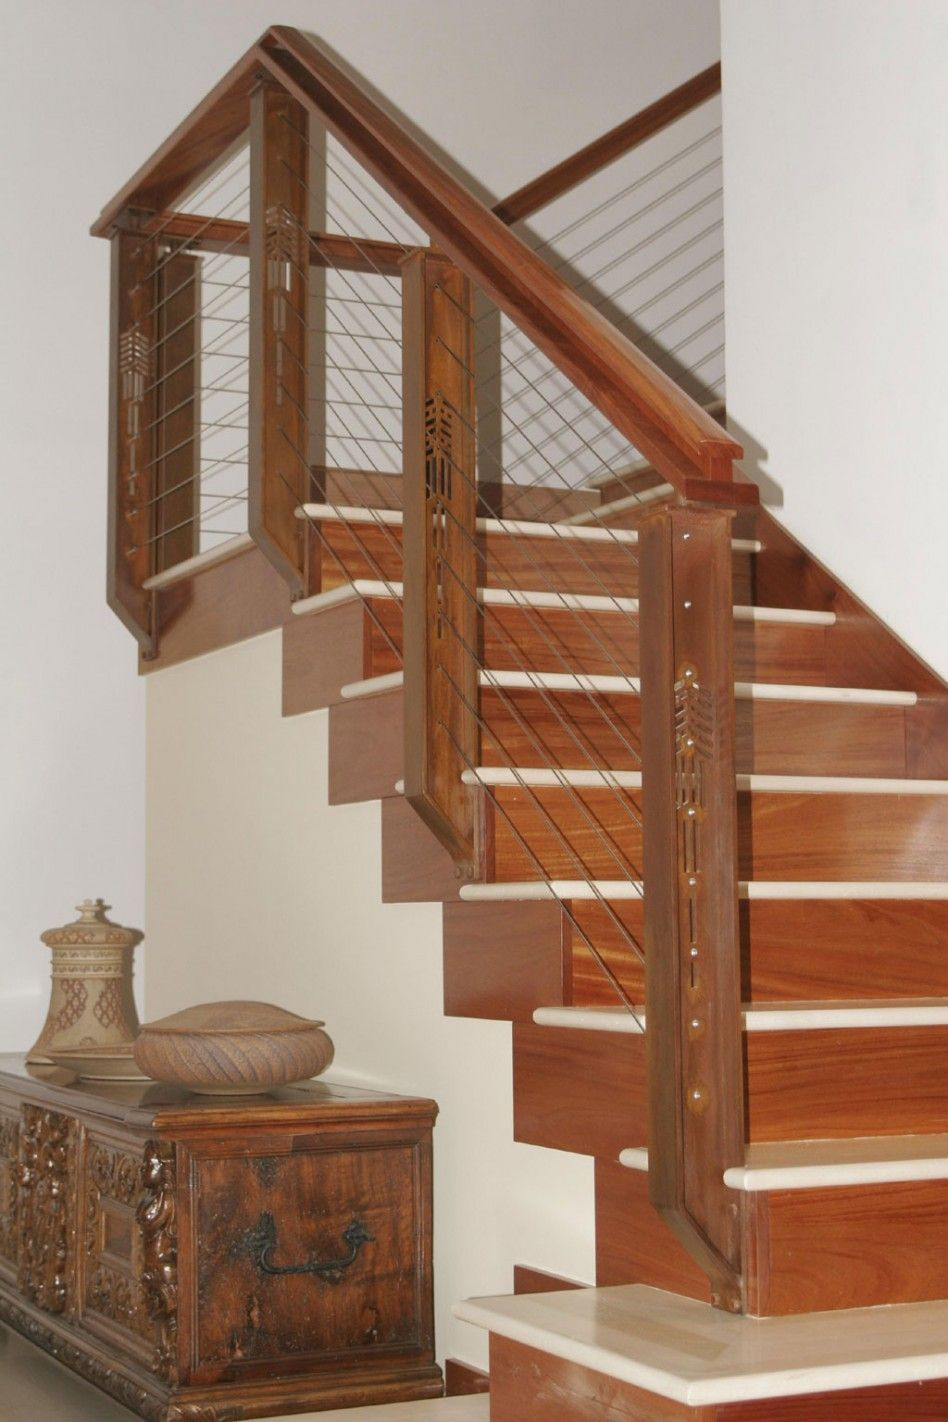 Best Rustic Wood Stair Railings Light Oak Wood Staircase Handrail And Cable Banister Staircase 400 x 300